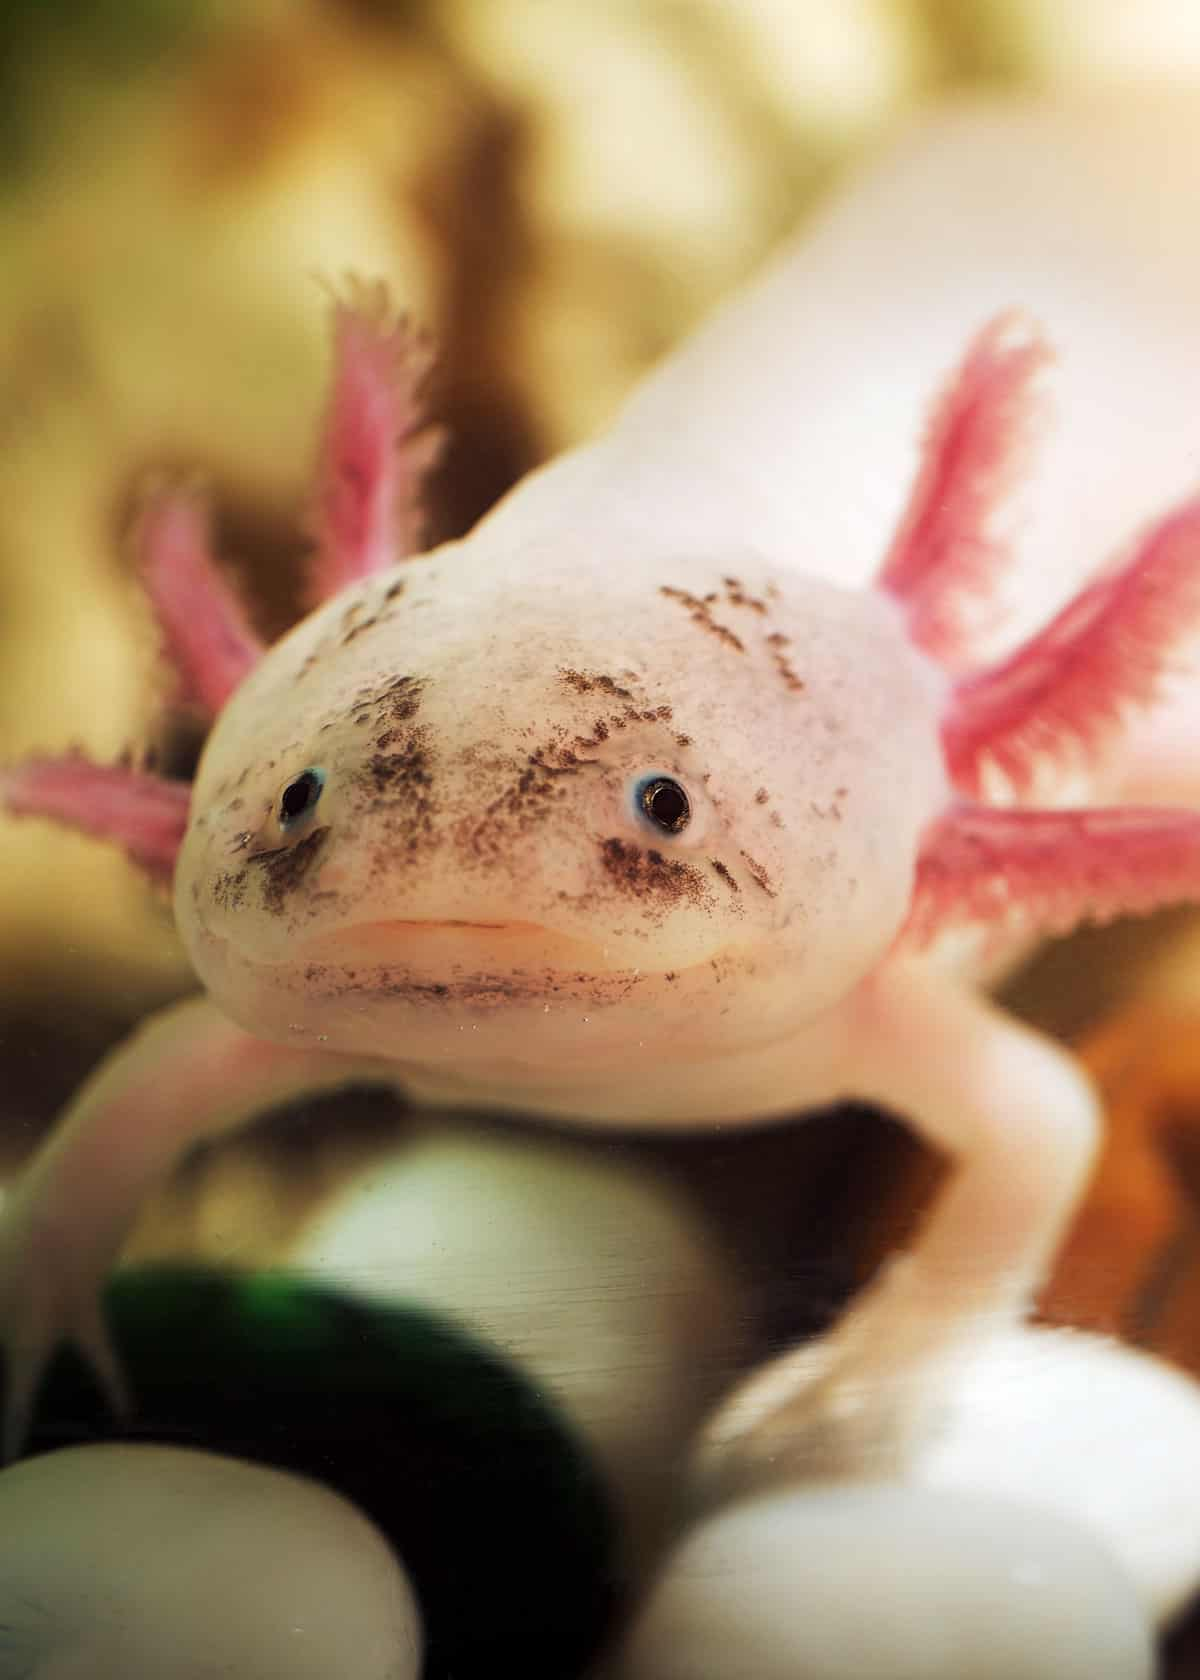 68 Axolotl Facts: Ultimate Guide to the Adorable Mexican Walking